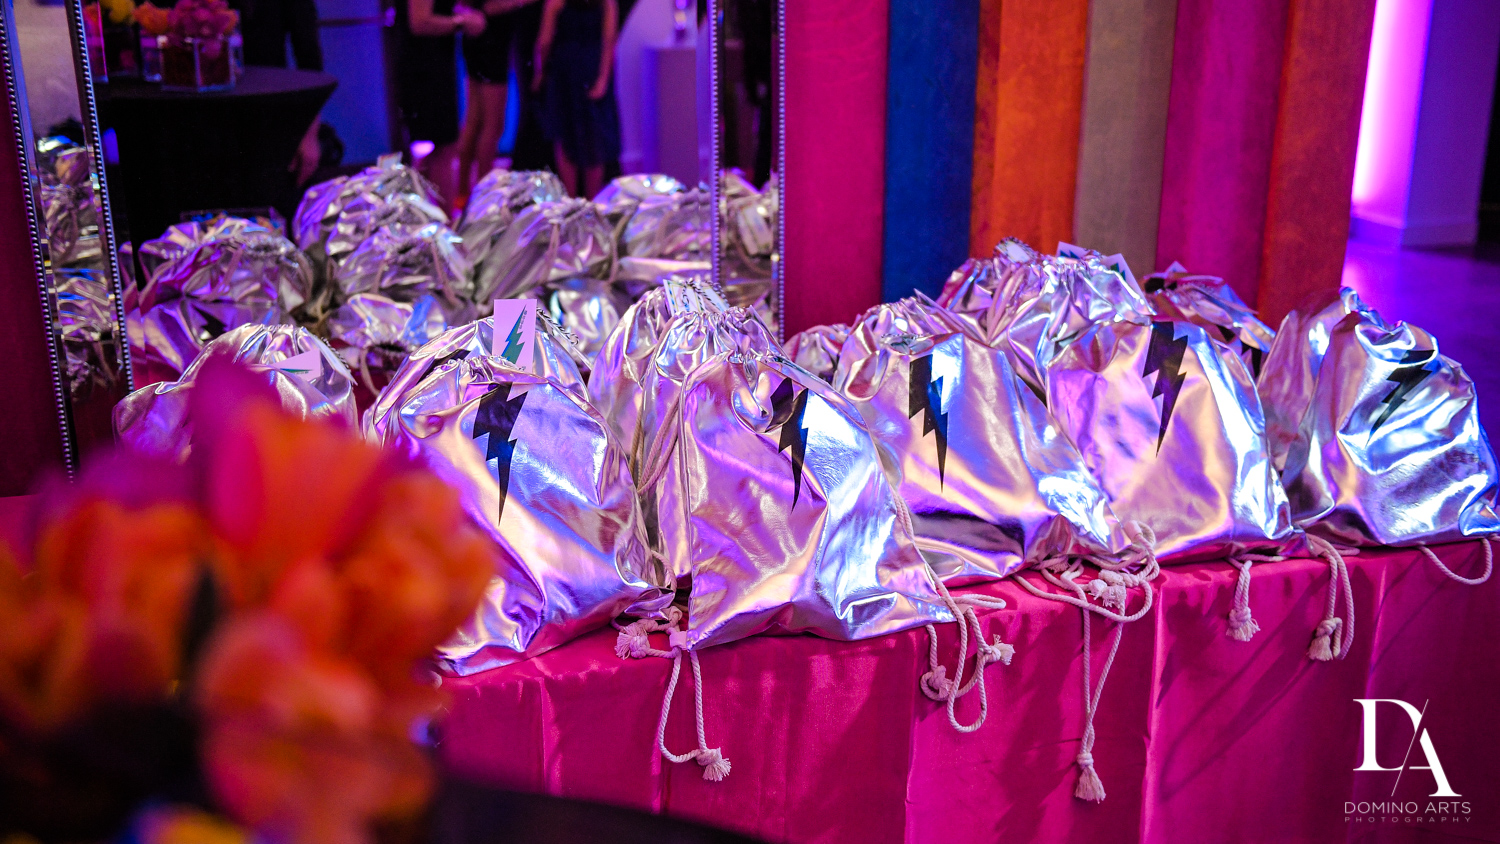 shiny party favors at Colorful B'Not Mitzvah at Gallery of Amazing Things by Domino Arts Photography